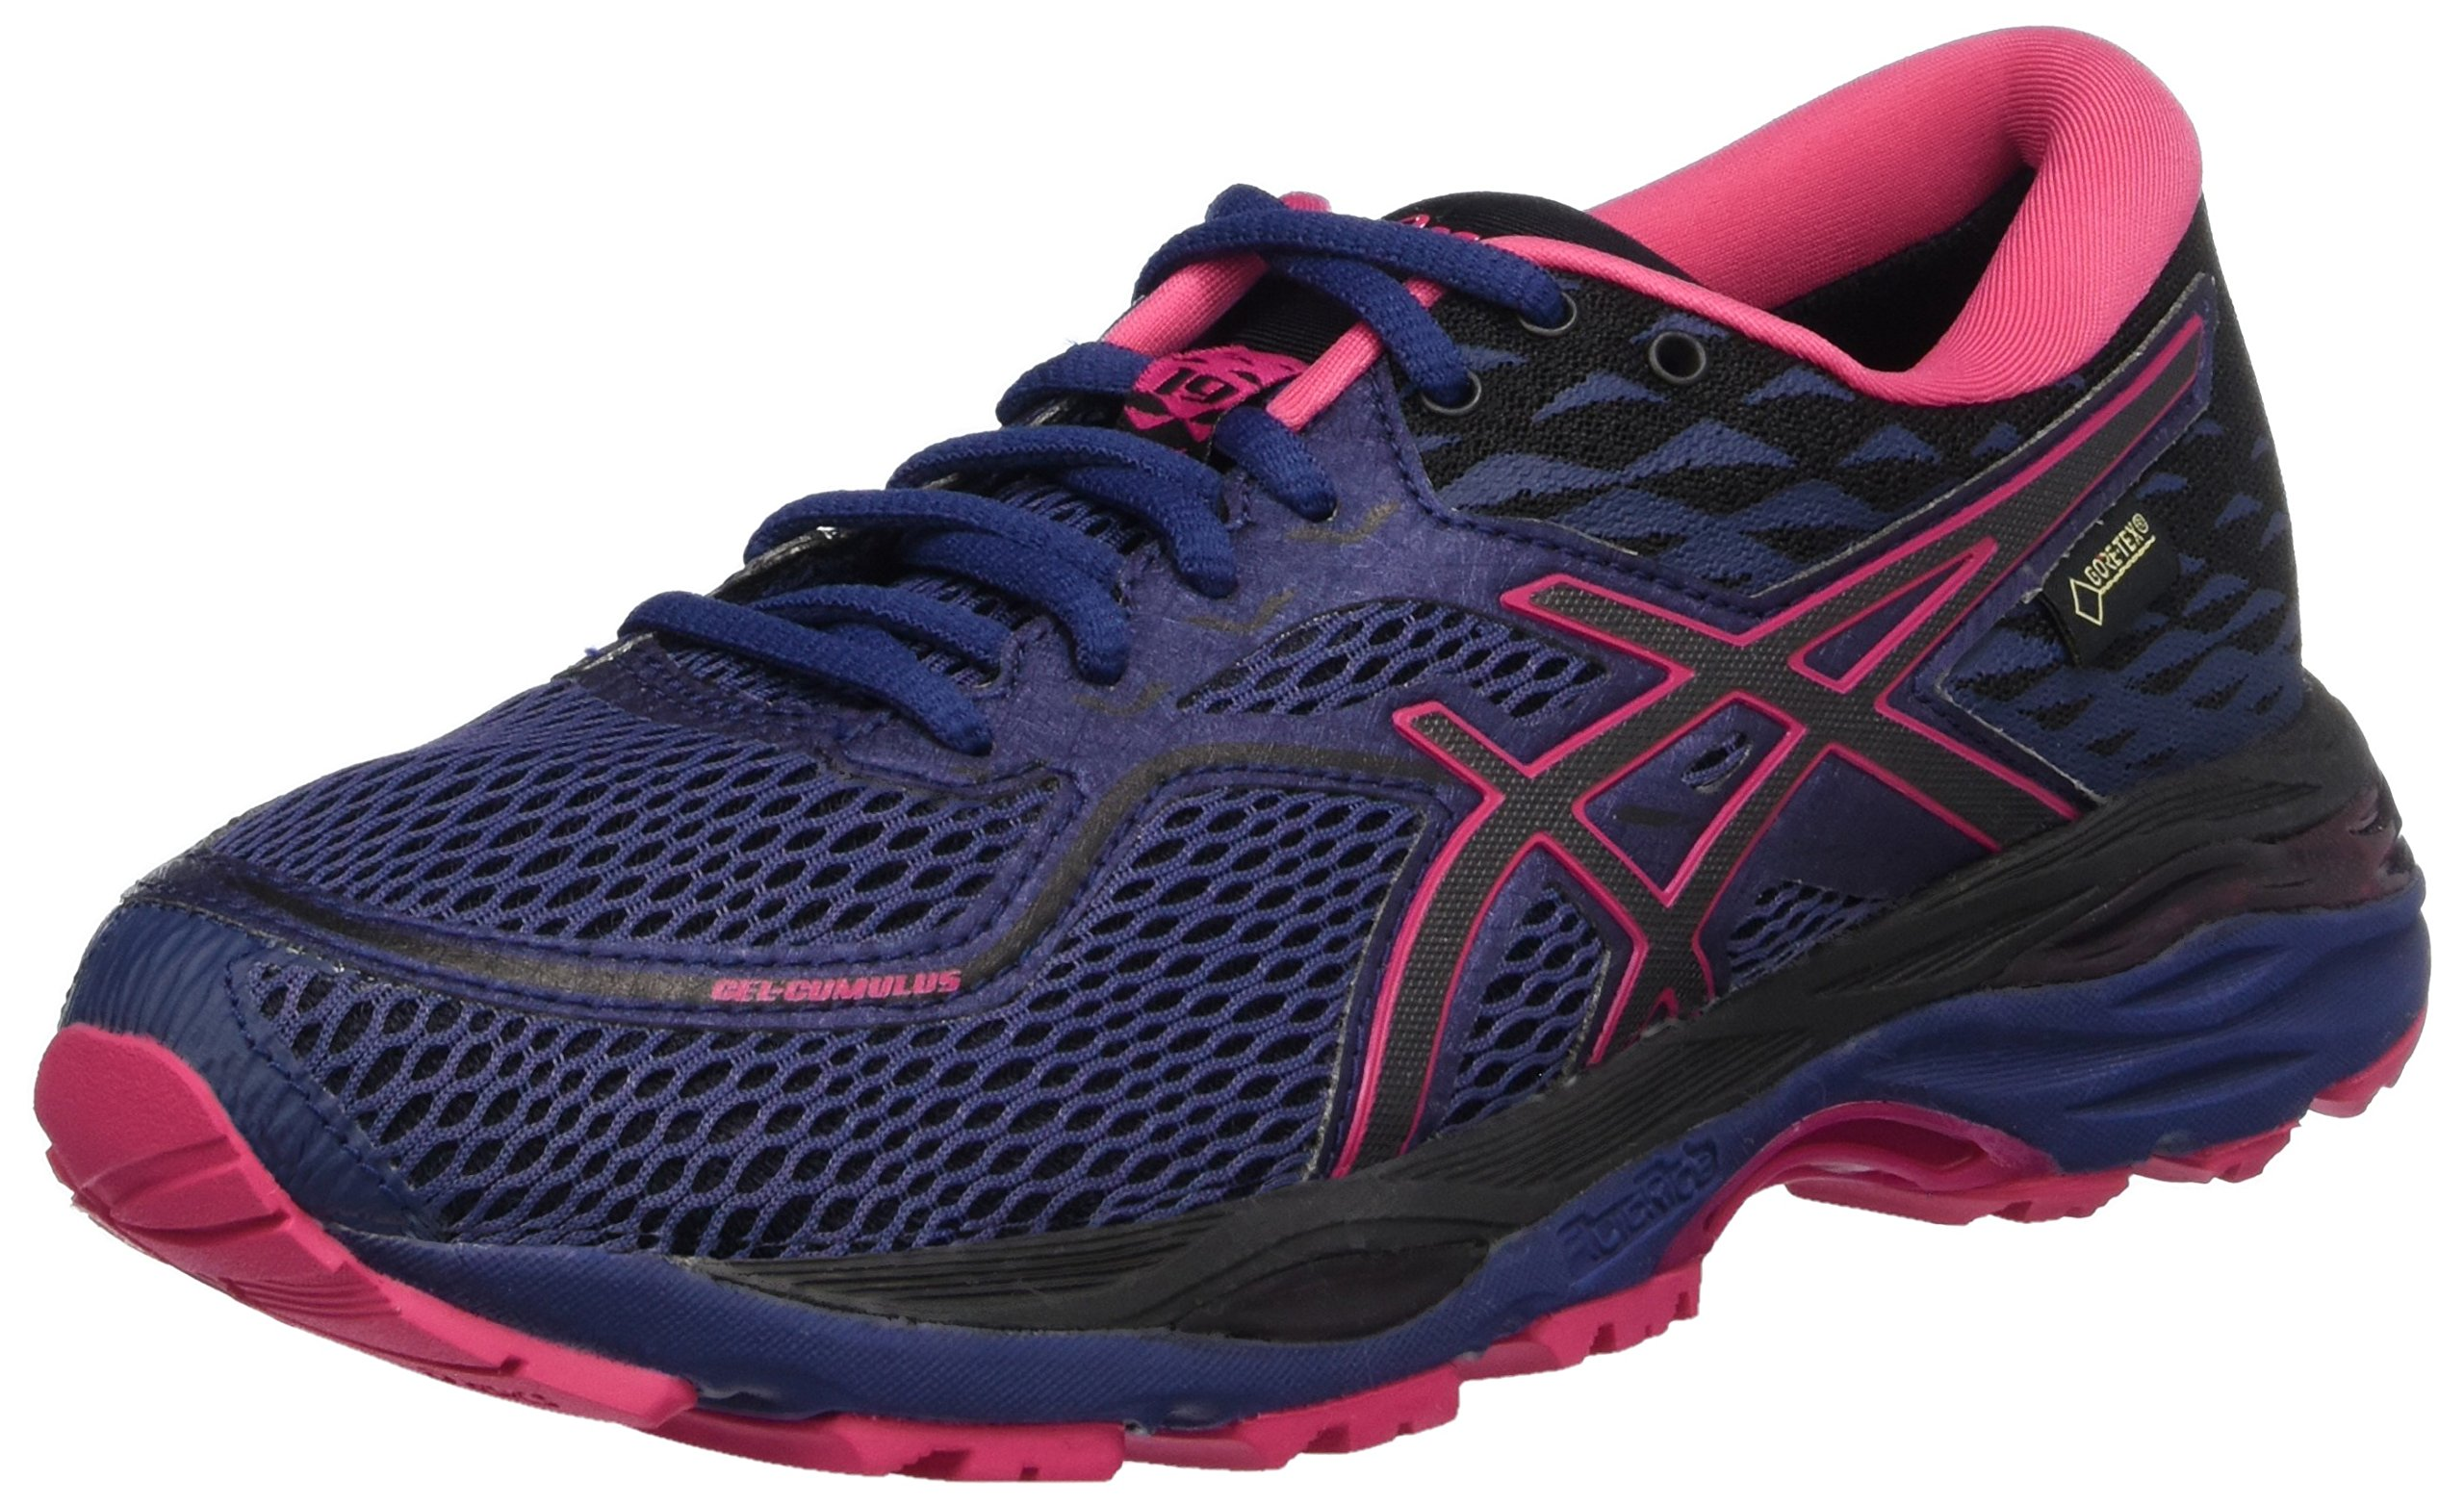 ASICS Men's Gel-Cumulus 19 Running Shoe (5.5, Indigo Blue/Black/Cosmo Pink)